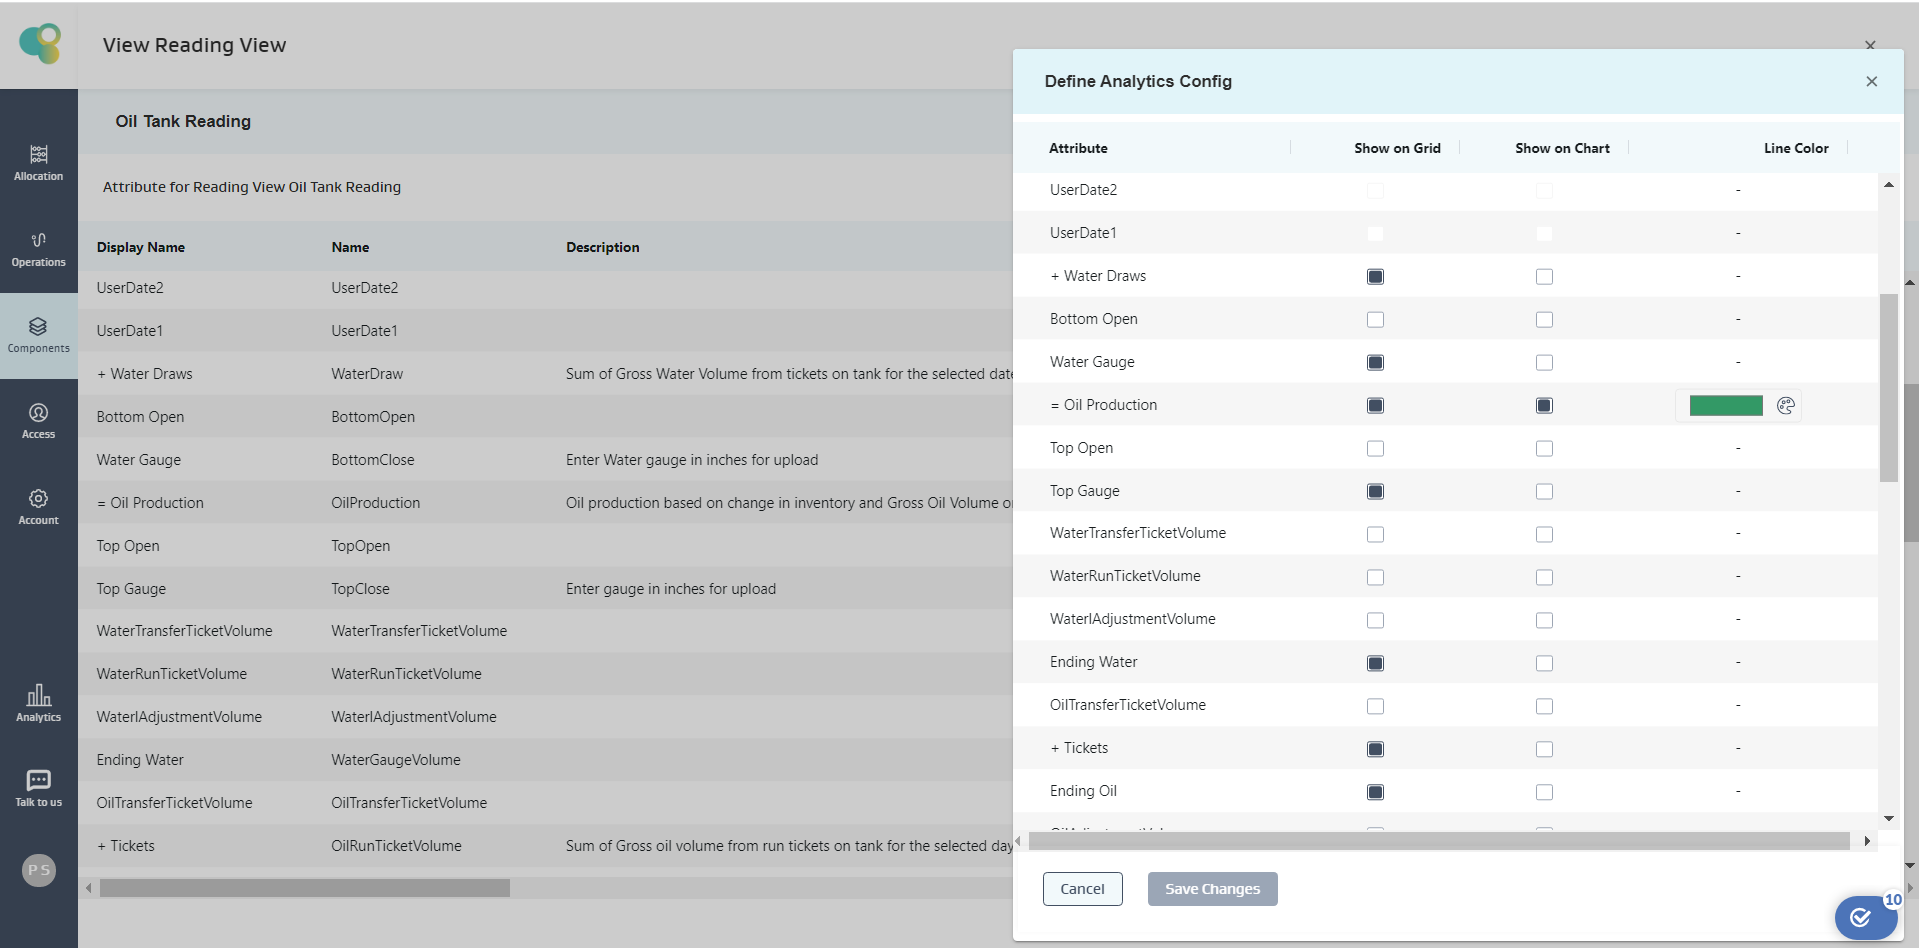 Enable grid and chart views for reading attributes